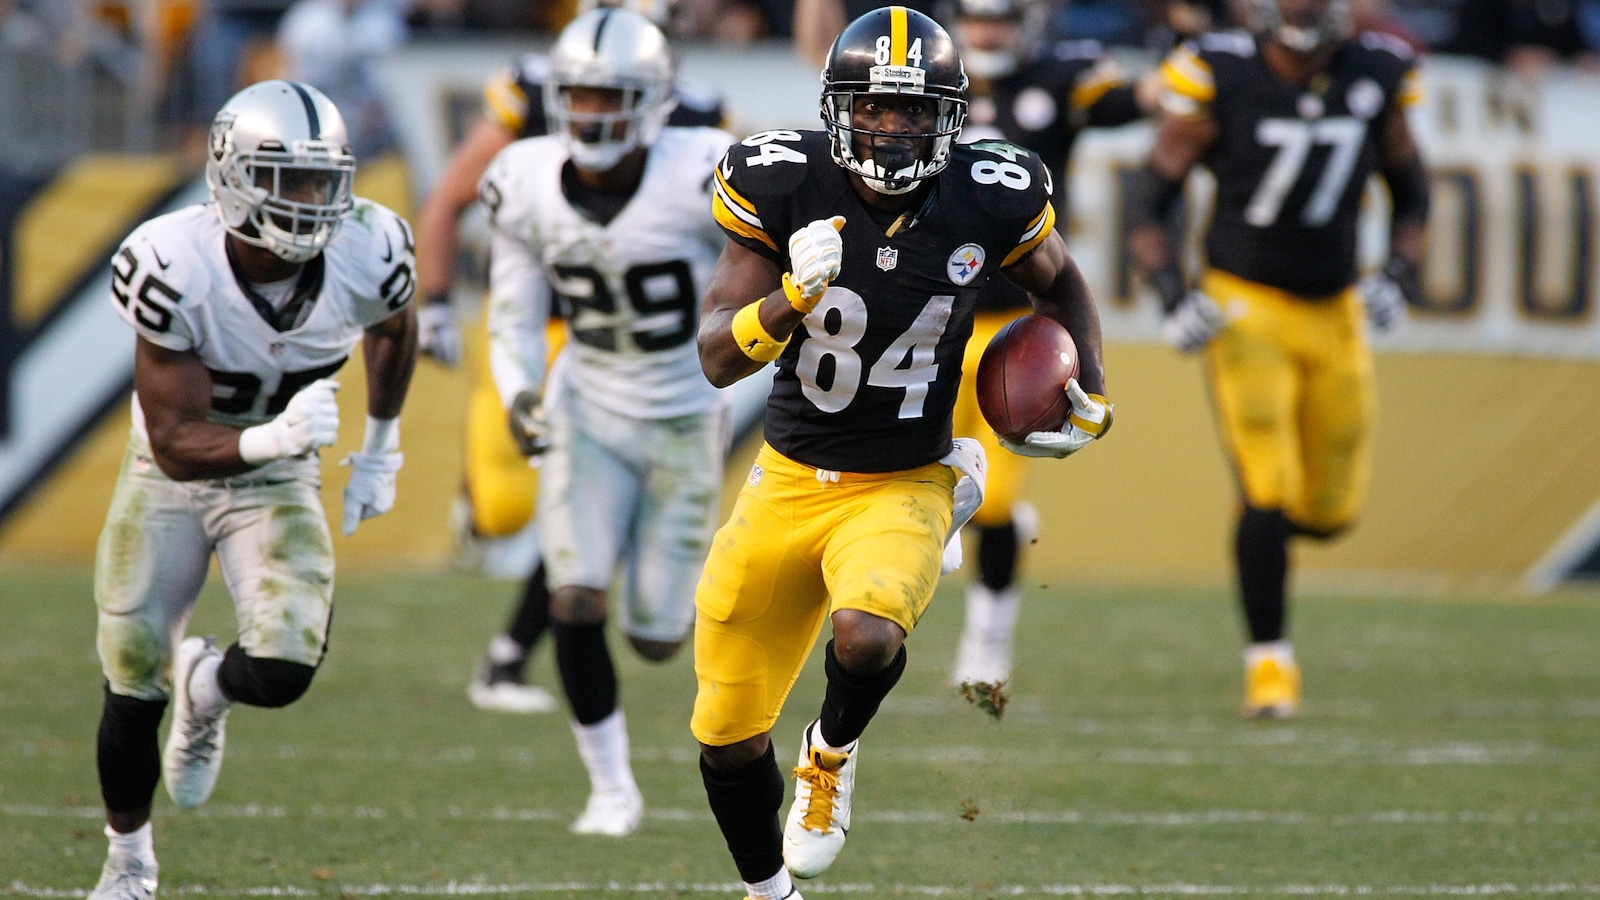 Les Steelers échangent Antonio Brown aux Raiders — NFL